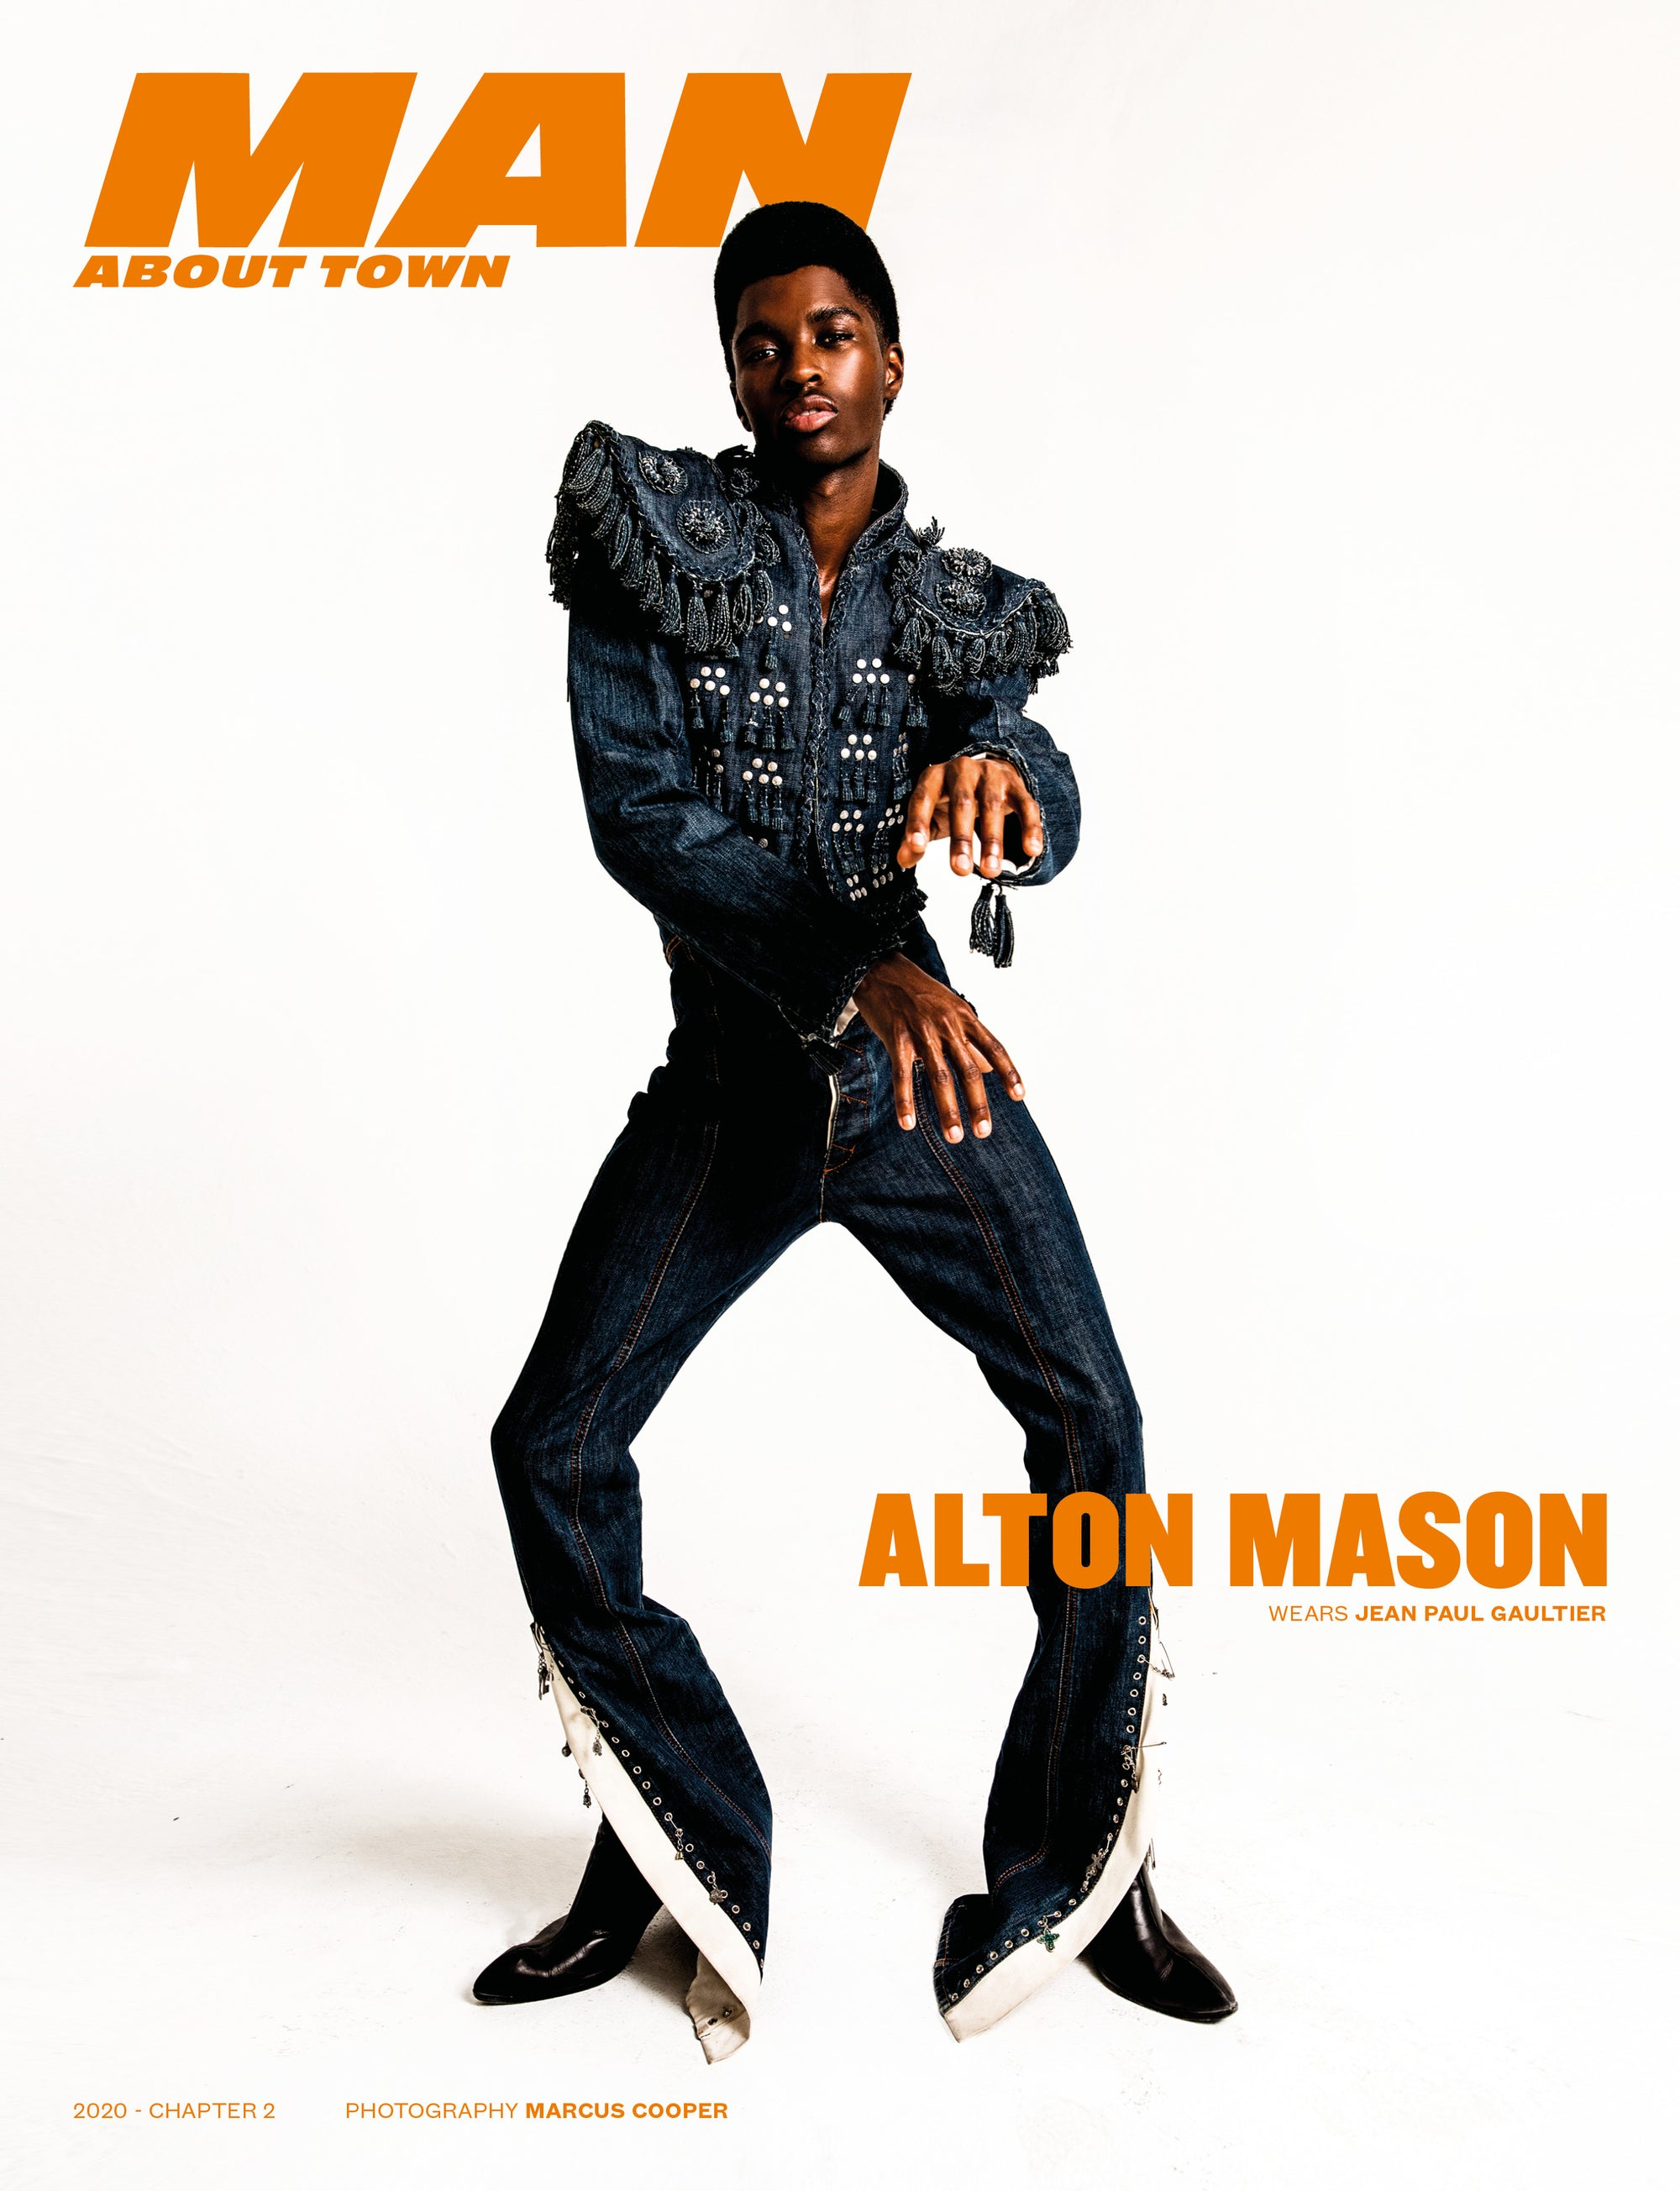 ALTON MASON wears Jean Paul Gaultier covers Man About Town 2020, Chapter II